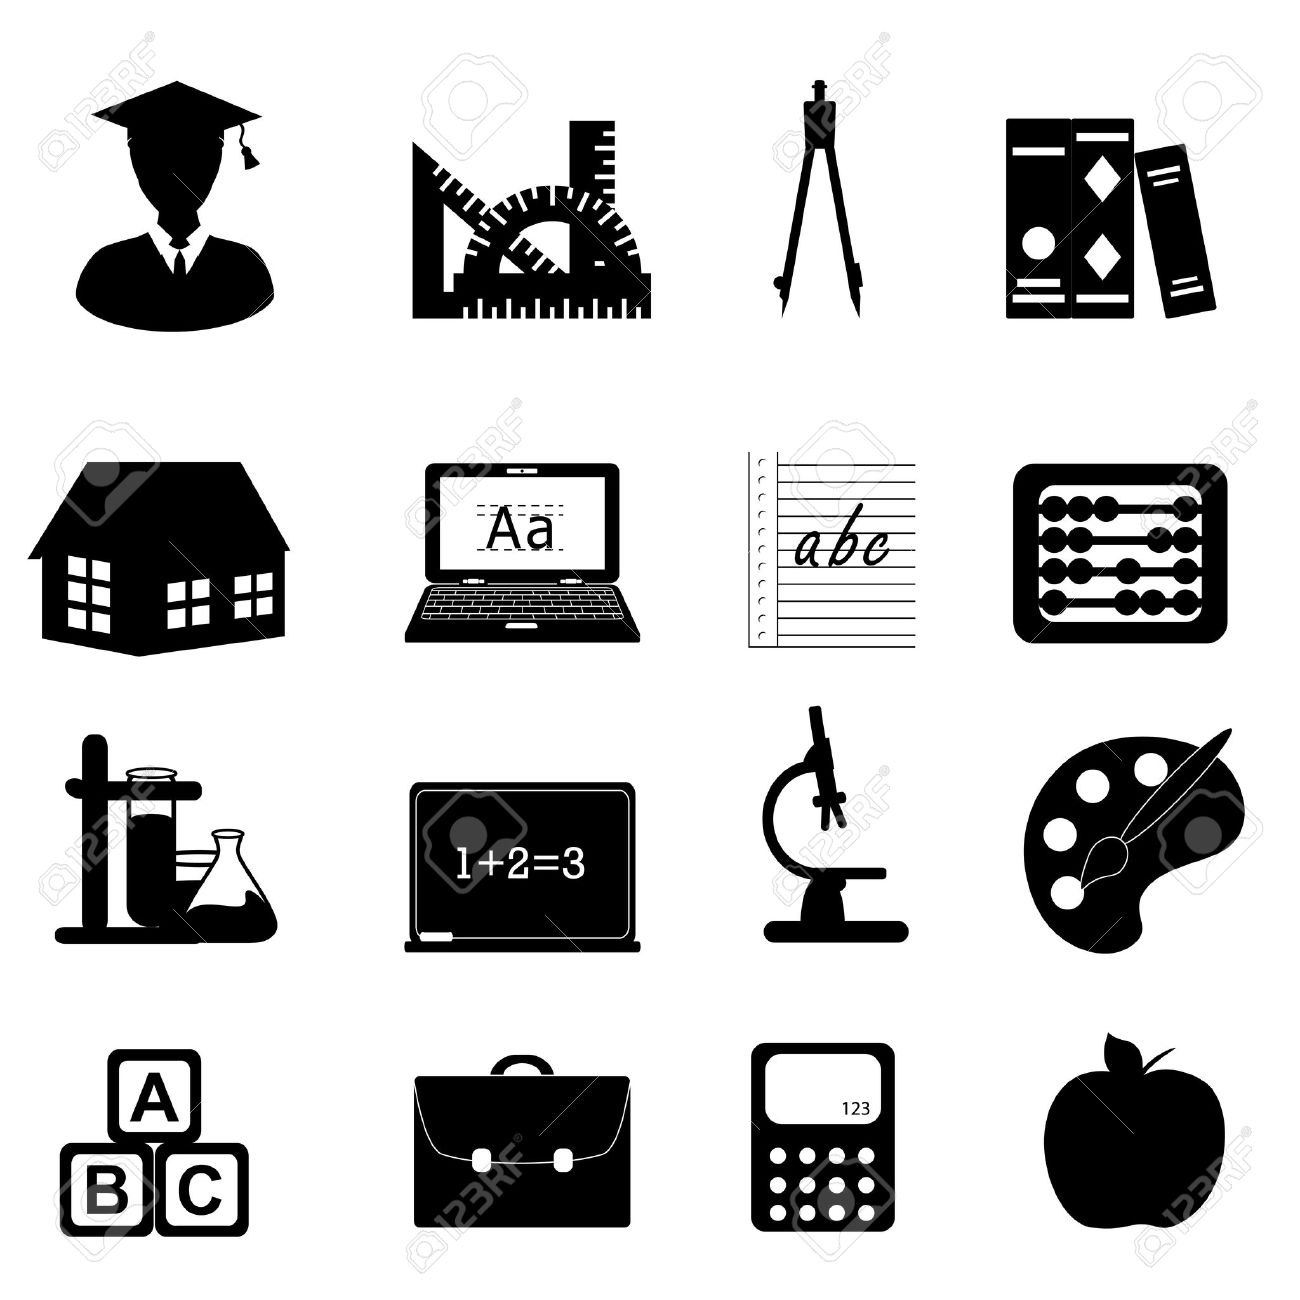 Education and school related symbols icon set royalty free education and school related symbols icon set stock vector 9885216 buycottarizona Image collections